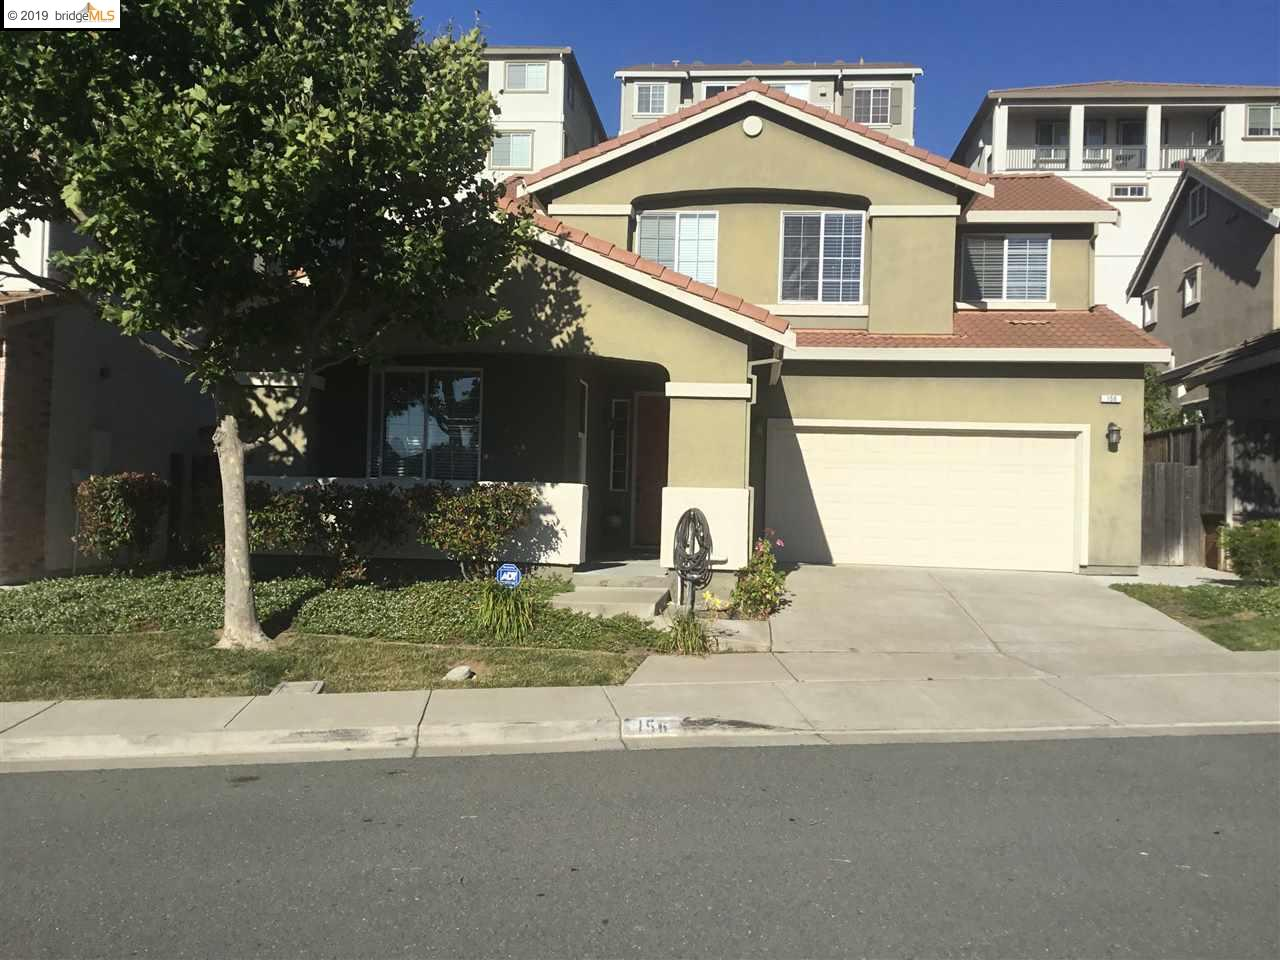 156 Lawlor Ct, BAY POINT, CA 94565